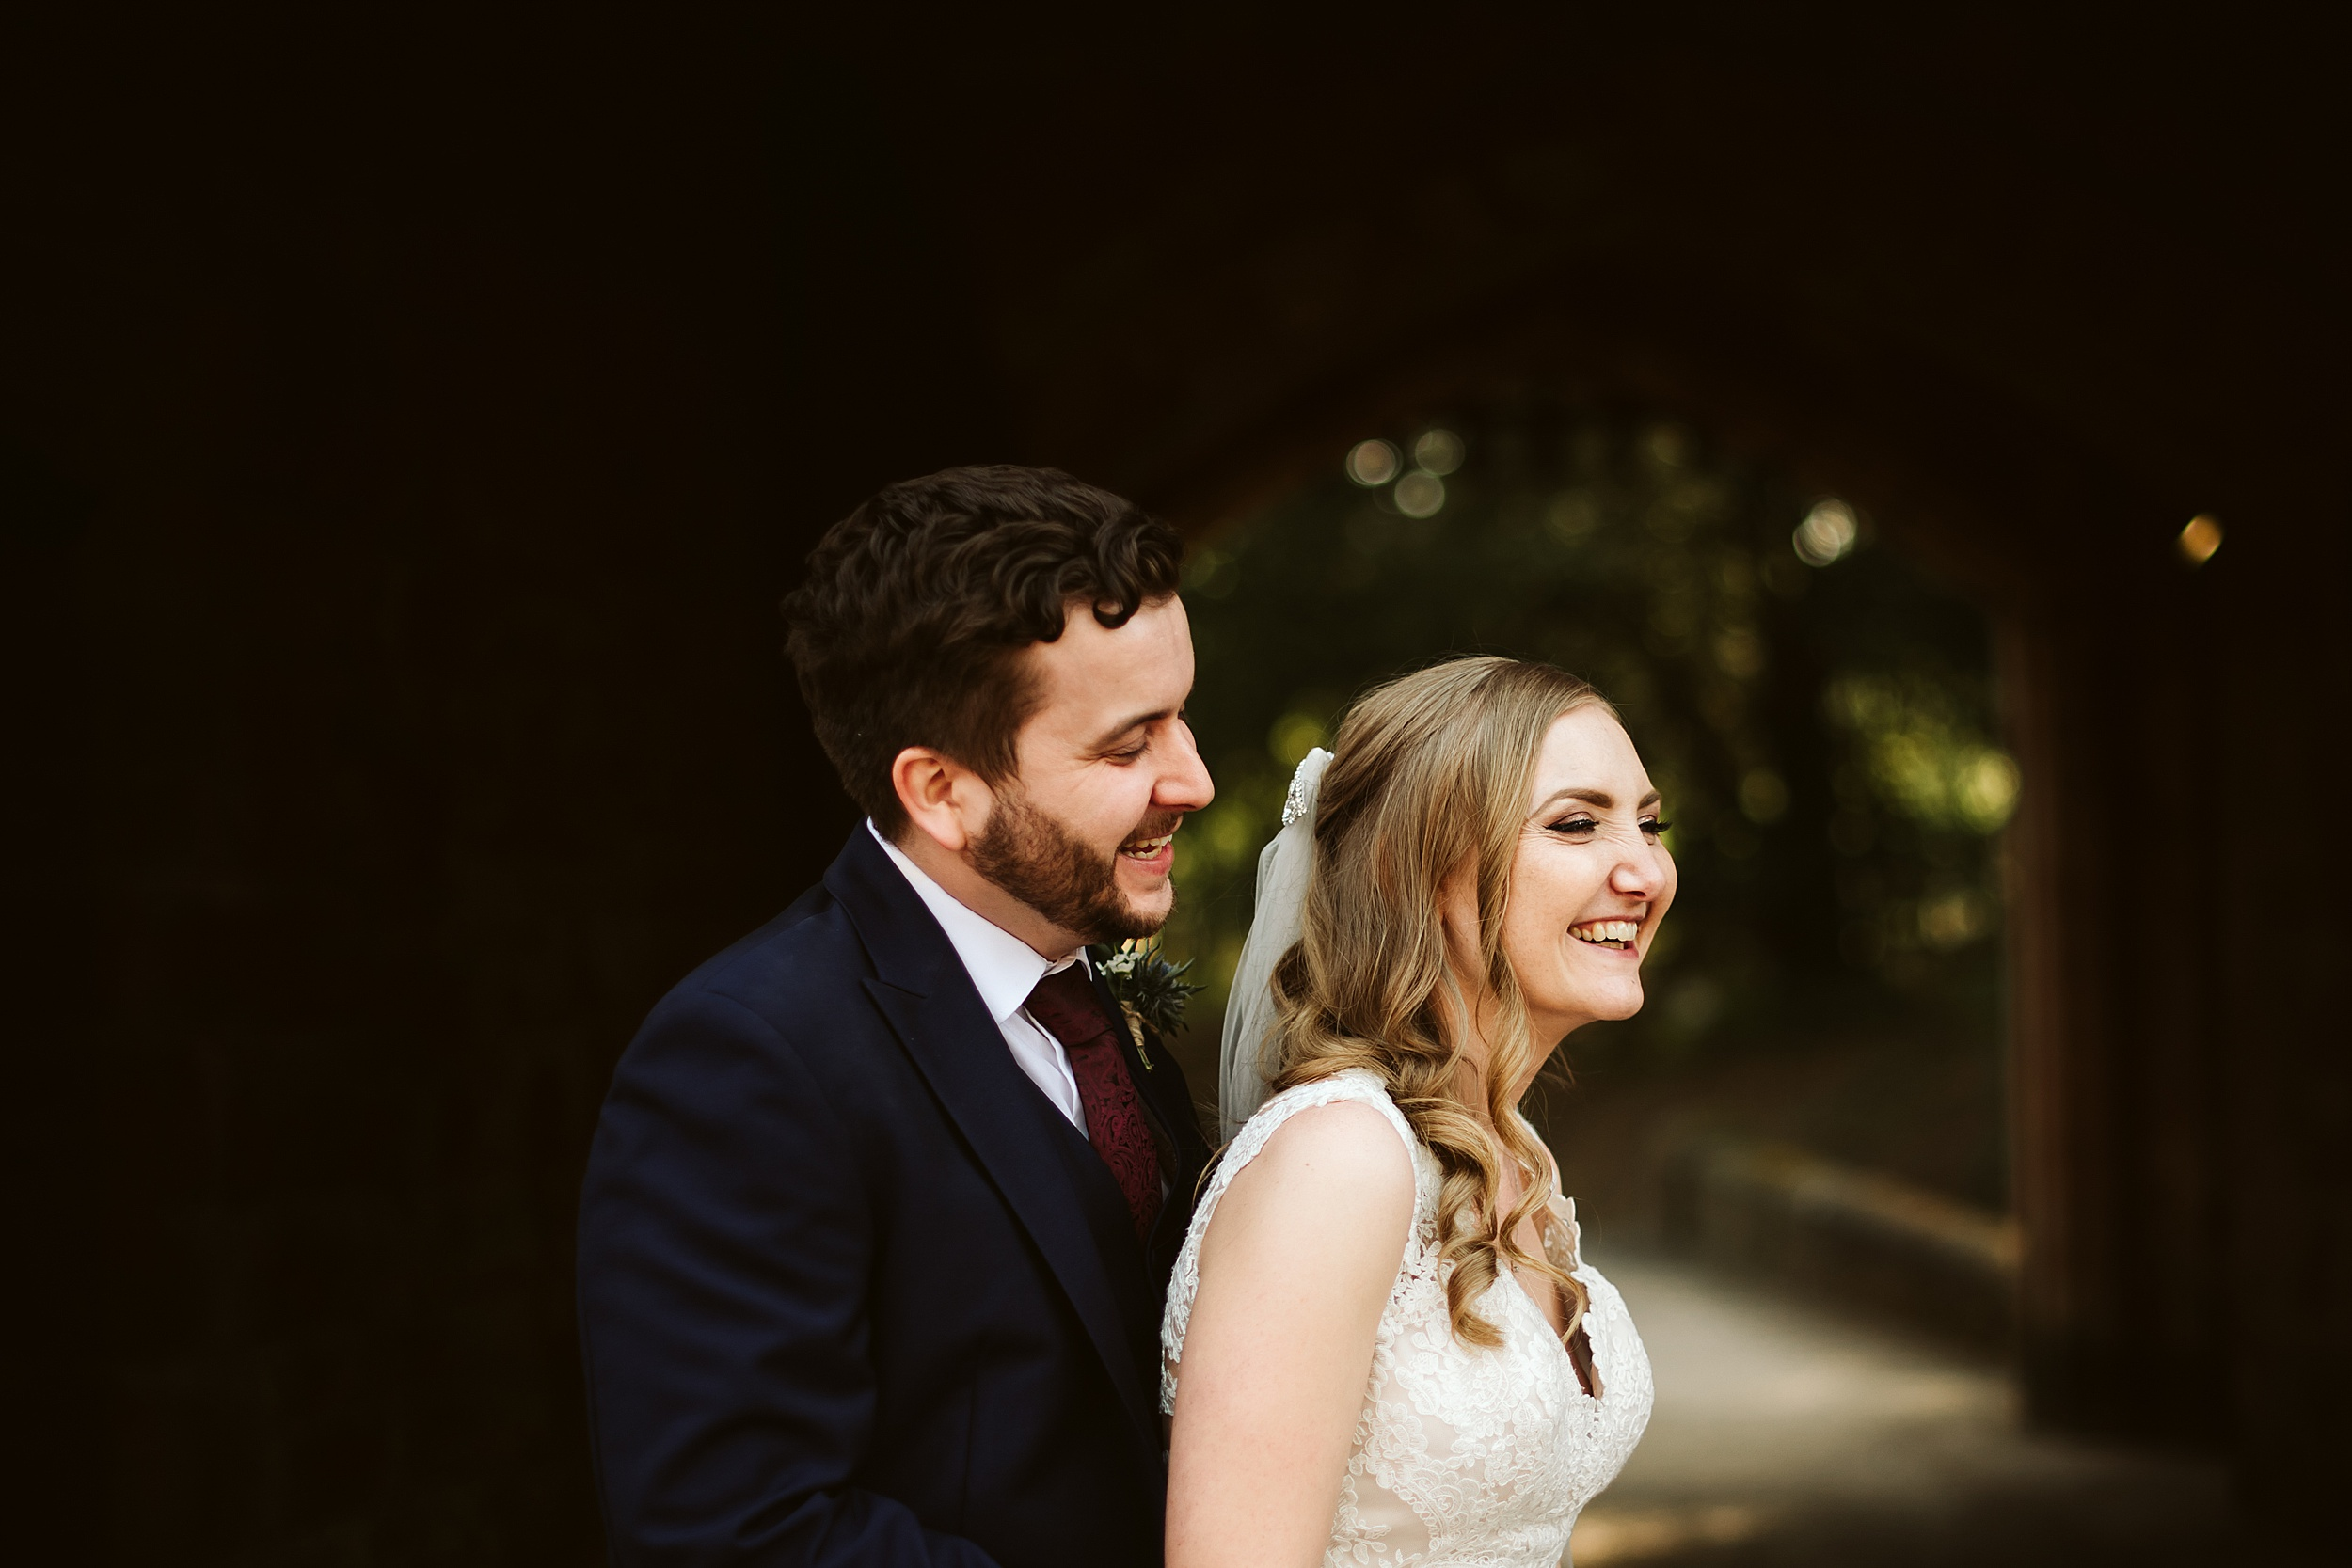 Peckforton_Castle_Cheshire_Toronto_Wedding_Photographer_UK_Destination_Wedding_0109.jpg